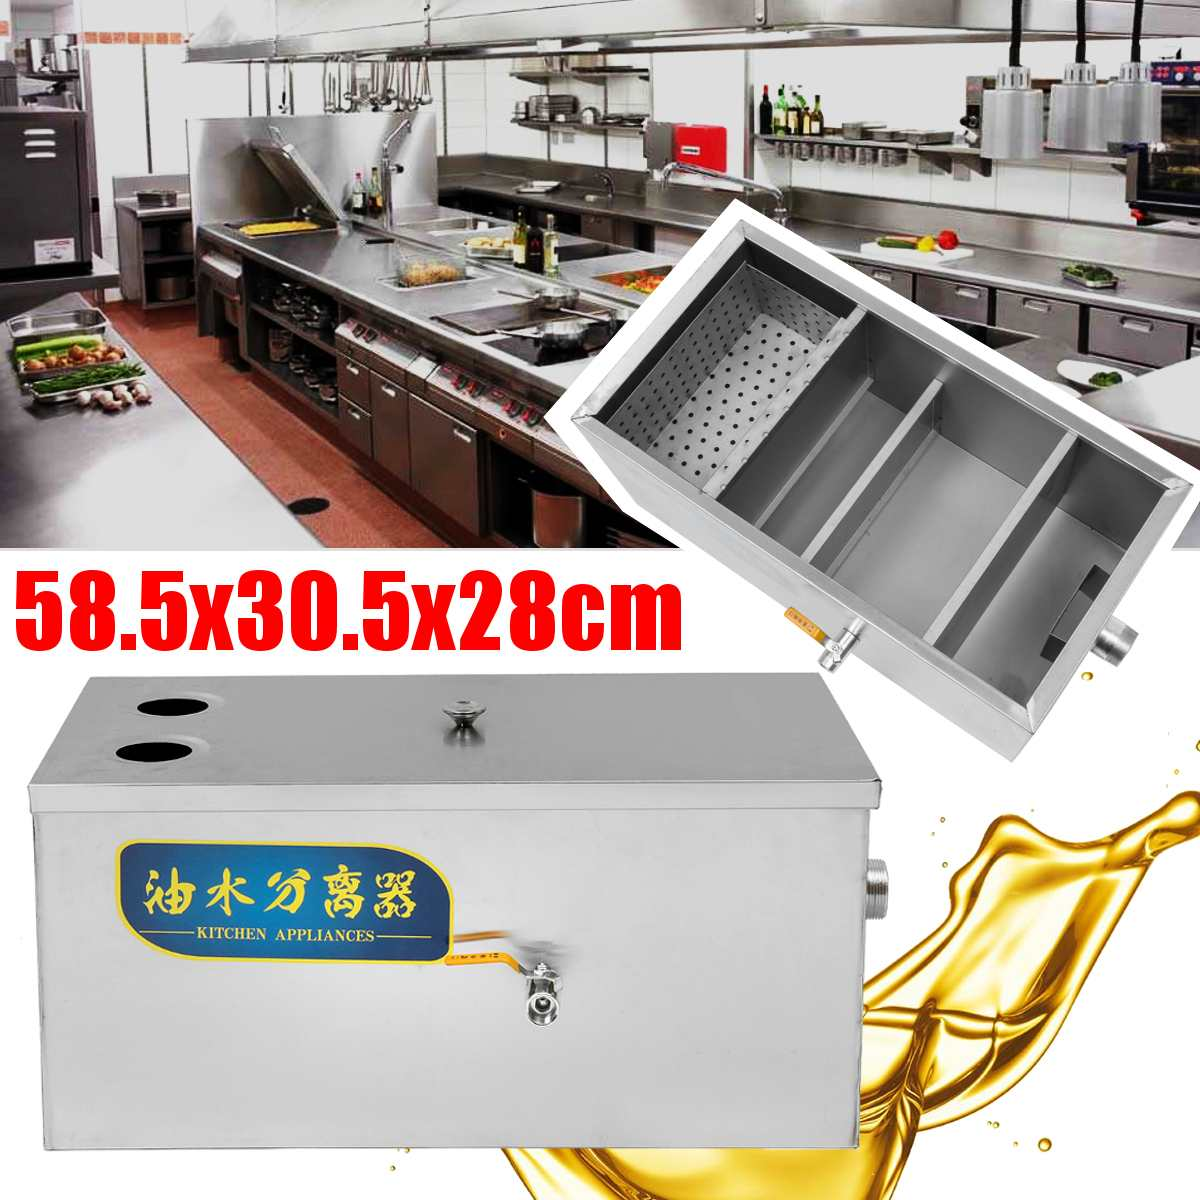 50L 58.5x30.5x28cm Large Grease Trap Stainless Steel Interceptor Thickened for Restaurant Kitchen Wastewater50L 58.5x30.5x28cm Large Grease Trap Stainless Steel Interceptor Thickened for Restaurant Kitchen Wastewater